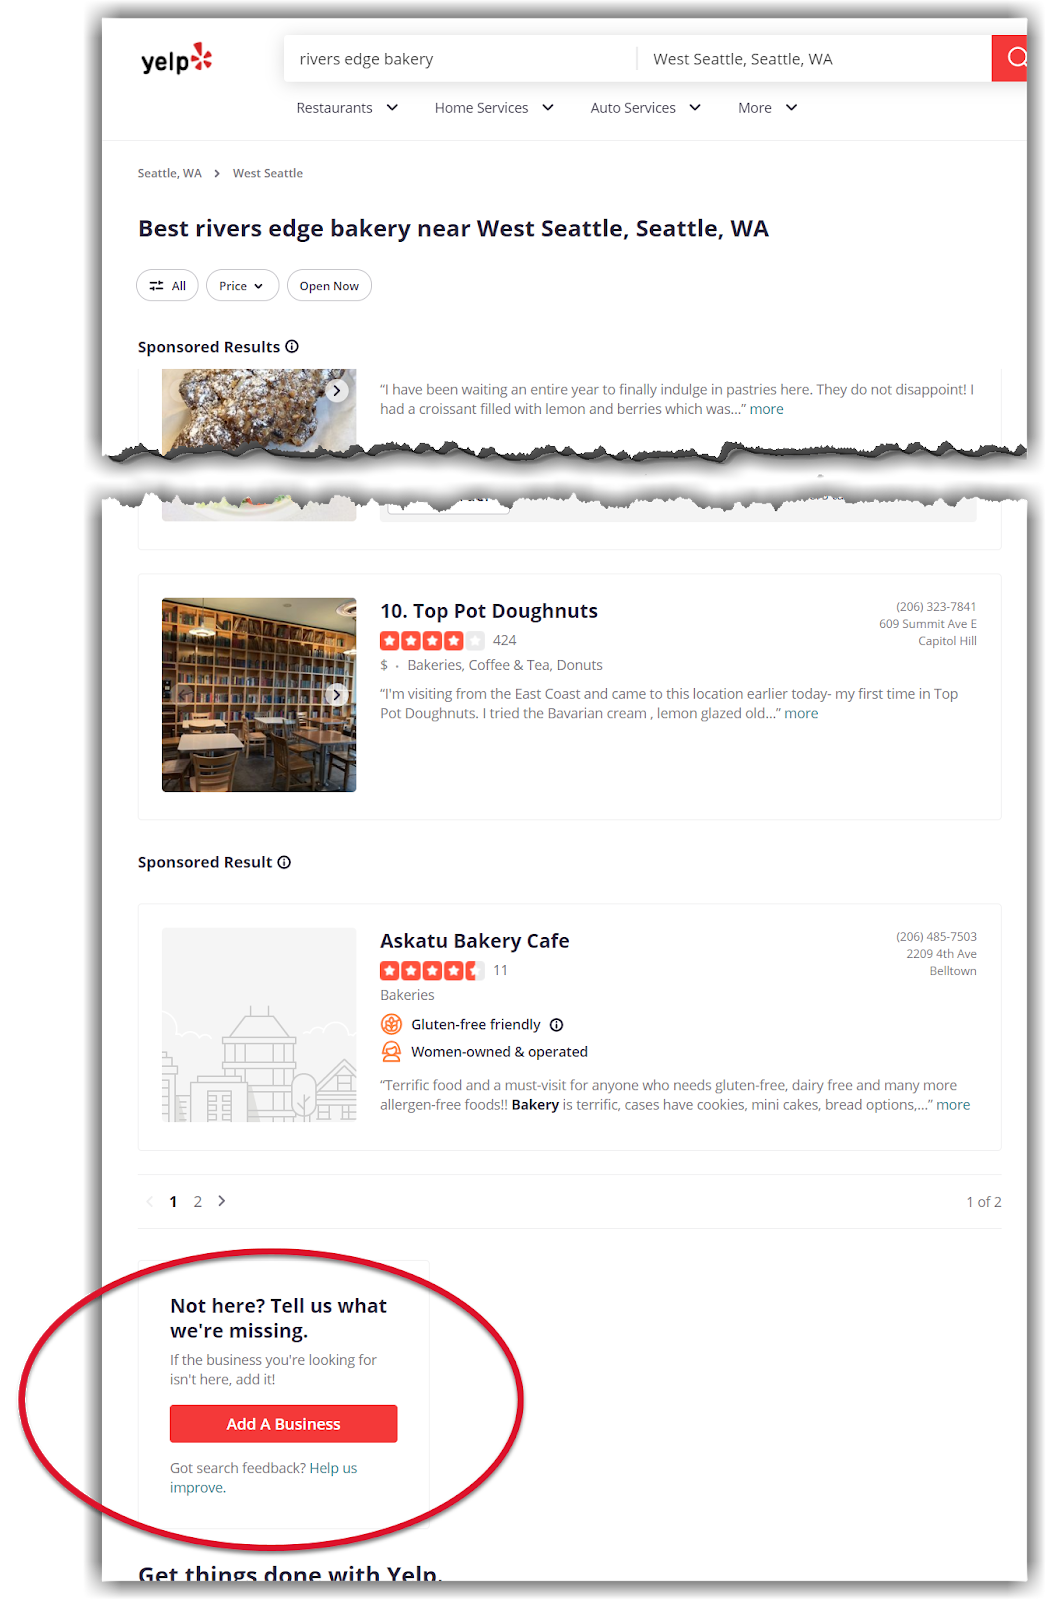 Yelp lets you claim your business right from their search results page